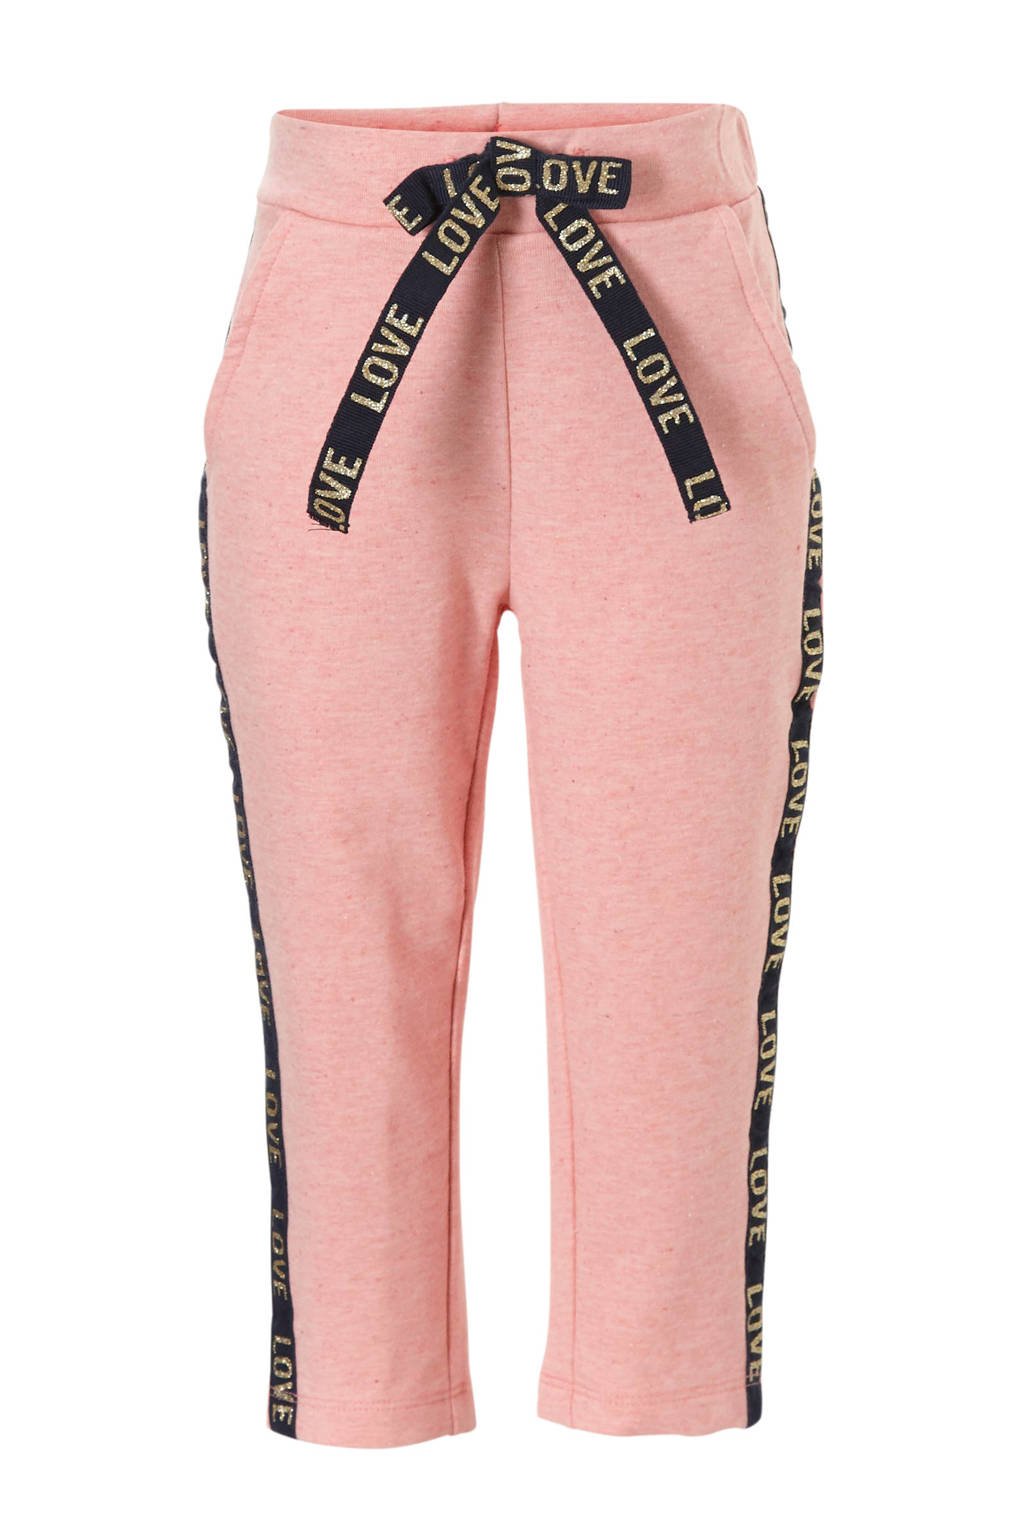 name it MINI joggingbroek met glitter, Roze/ antraciet